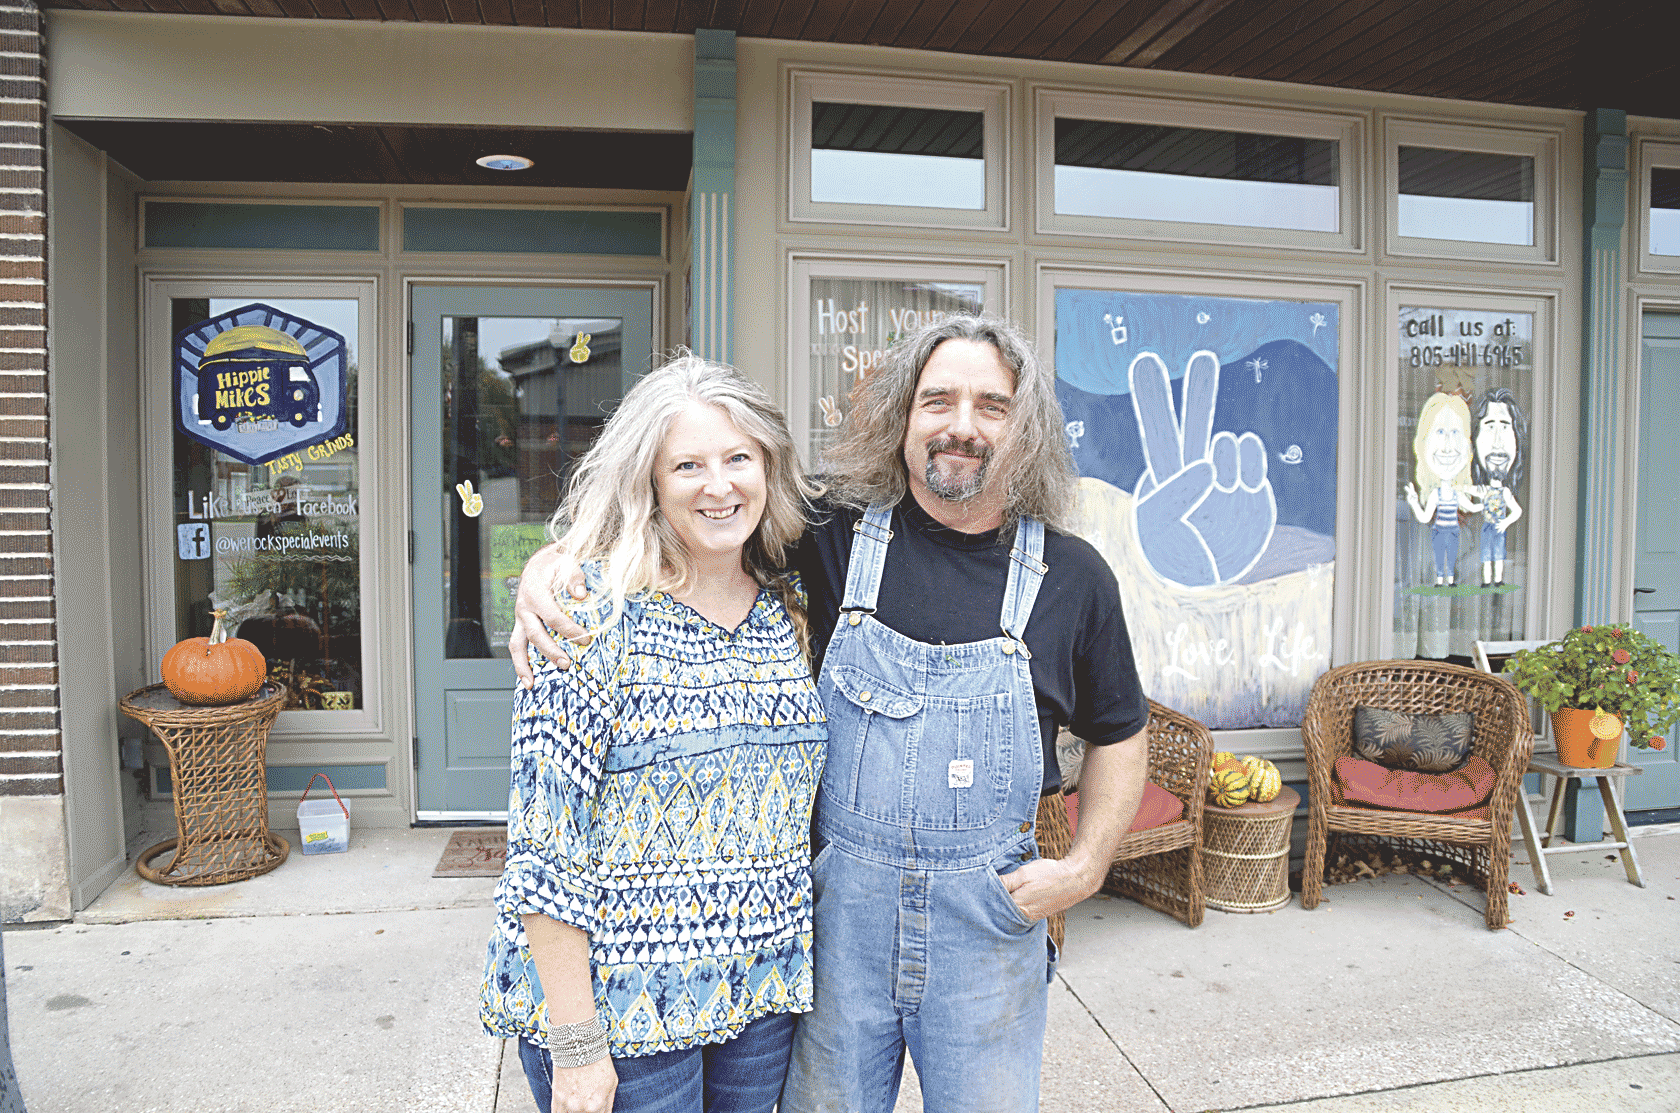 Grilling up a groovy good time	Hippy Mikes opens doors in Fayette Chris DeBack	cdeback@fayettecountynewspapers.com Hippy Mikes in Fayette hopes to be more than an idea and just another restaurant. Owners...